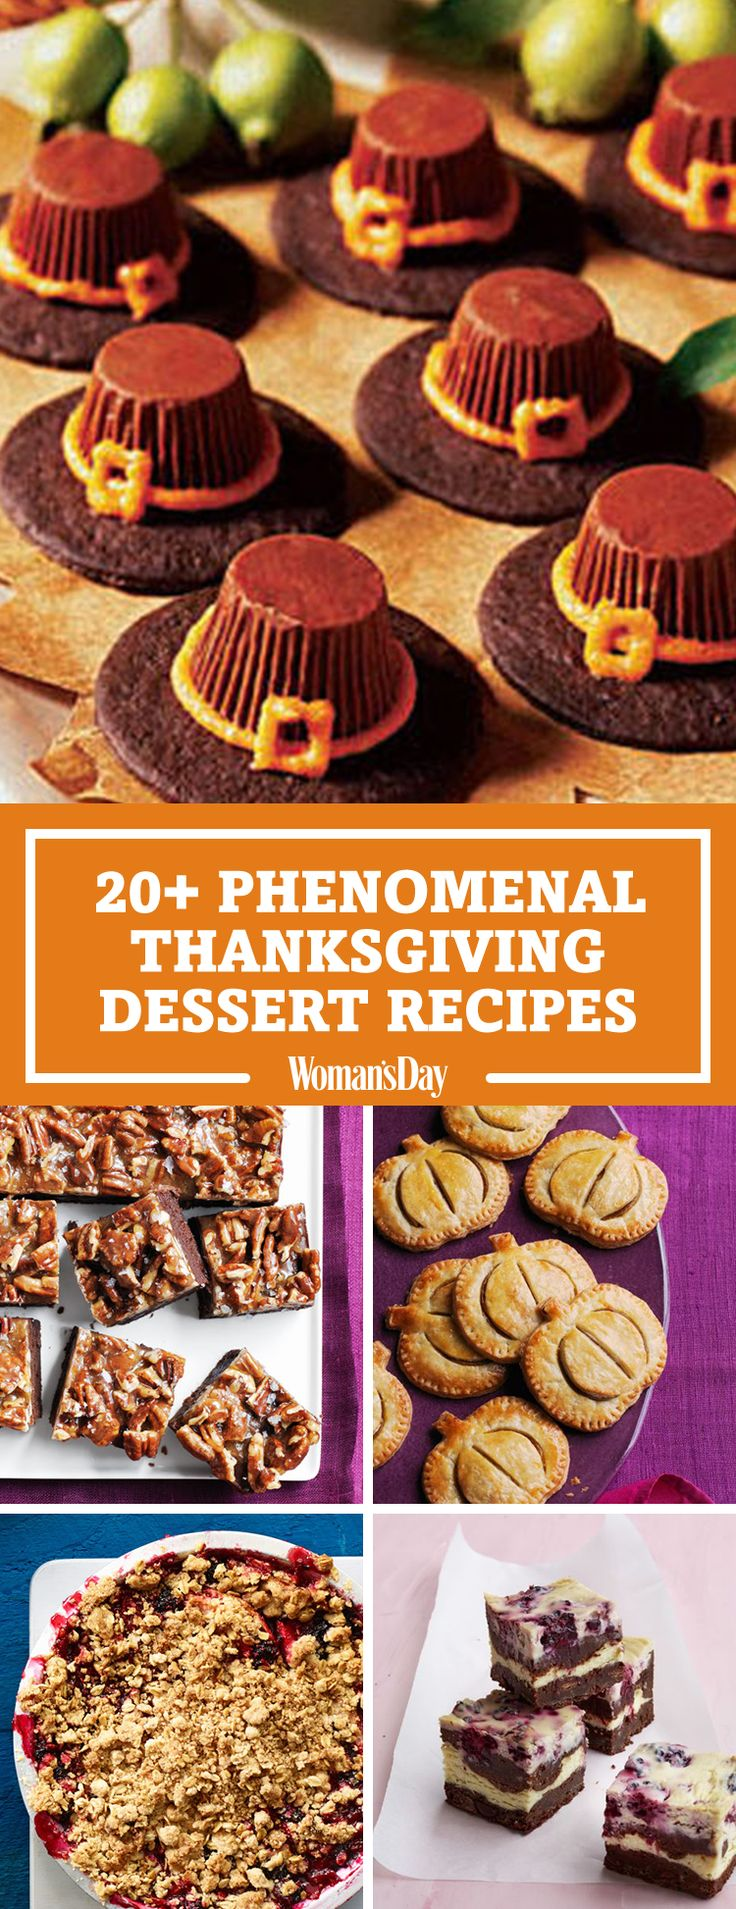 35+ Phenomenal Recipes for Thanksgiving Desserts  womansday